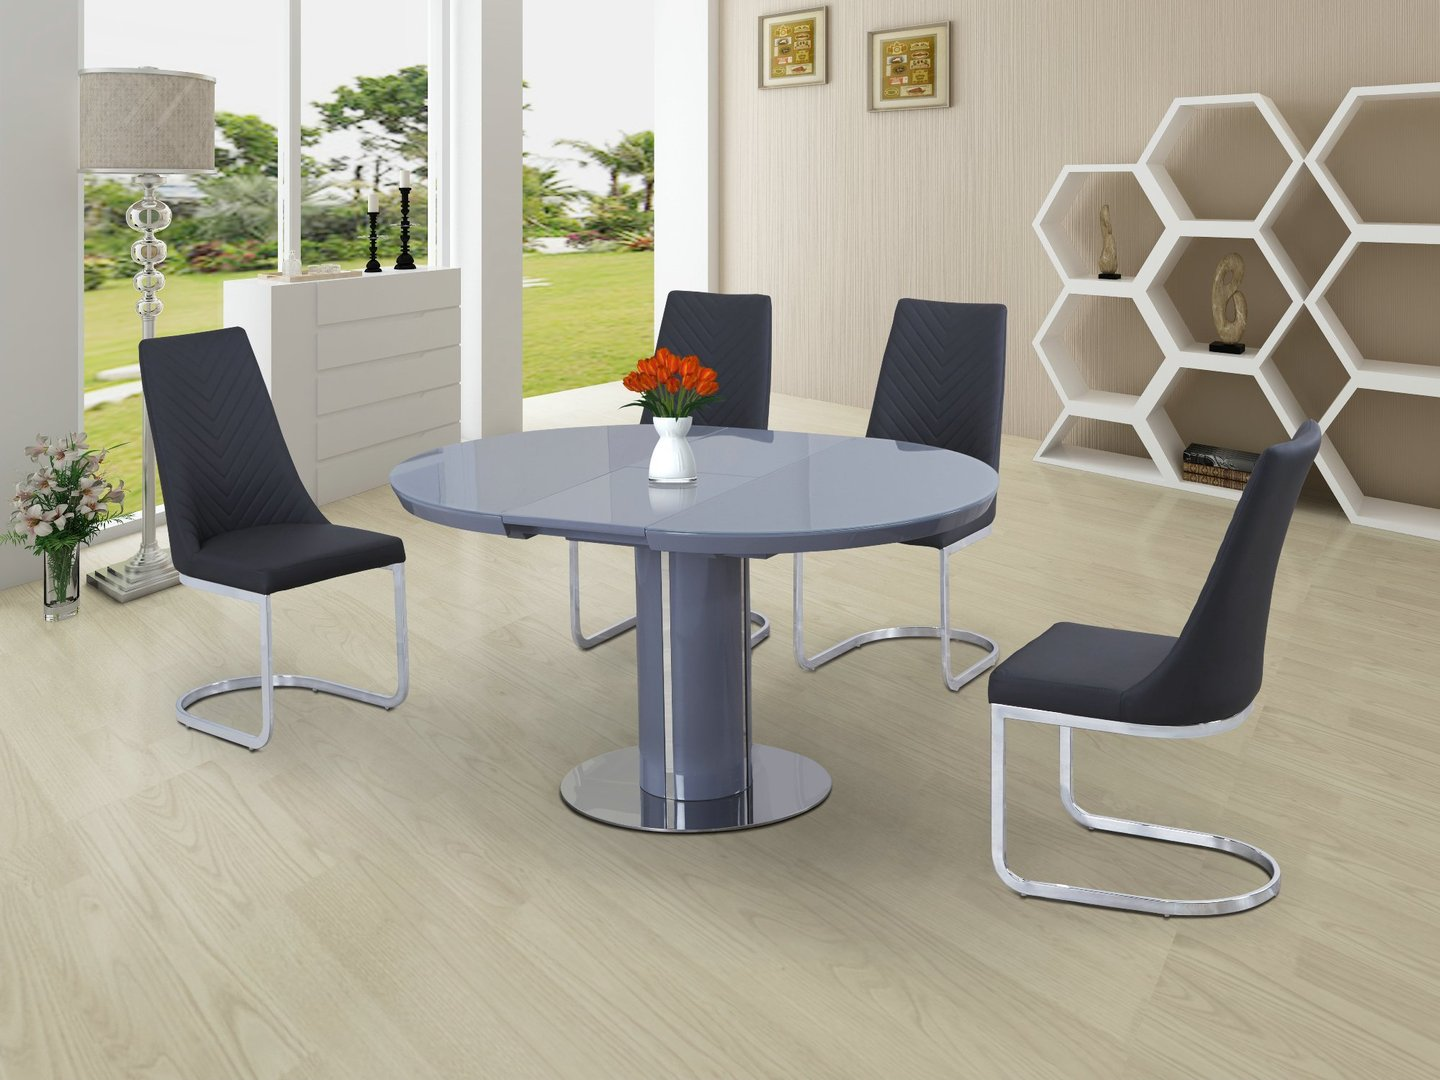 Round Grey Glass High Gloss Dining Table and 4 Chairs  : RoundtoOvalGreyGlasswithHighGlossBasediningtableand4GreyCurveChairs from www.homegenies.co.uk size 1440 x 1080 jpeg 196kB